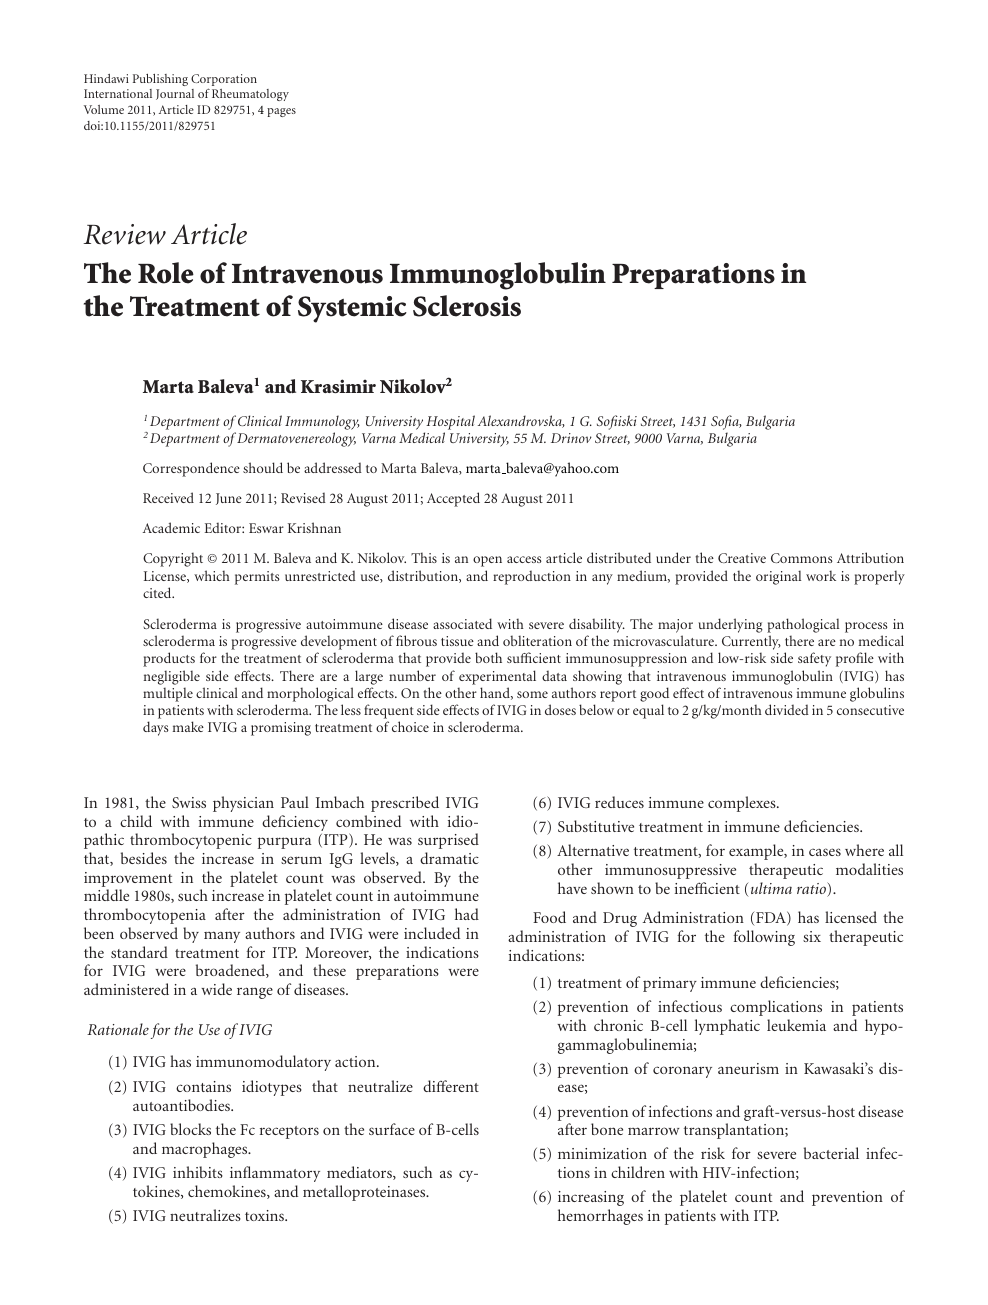 The Role of Intravenous Immunoglobulin Preparations in the